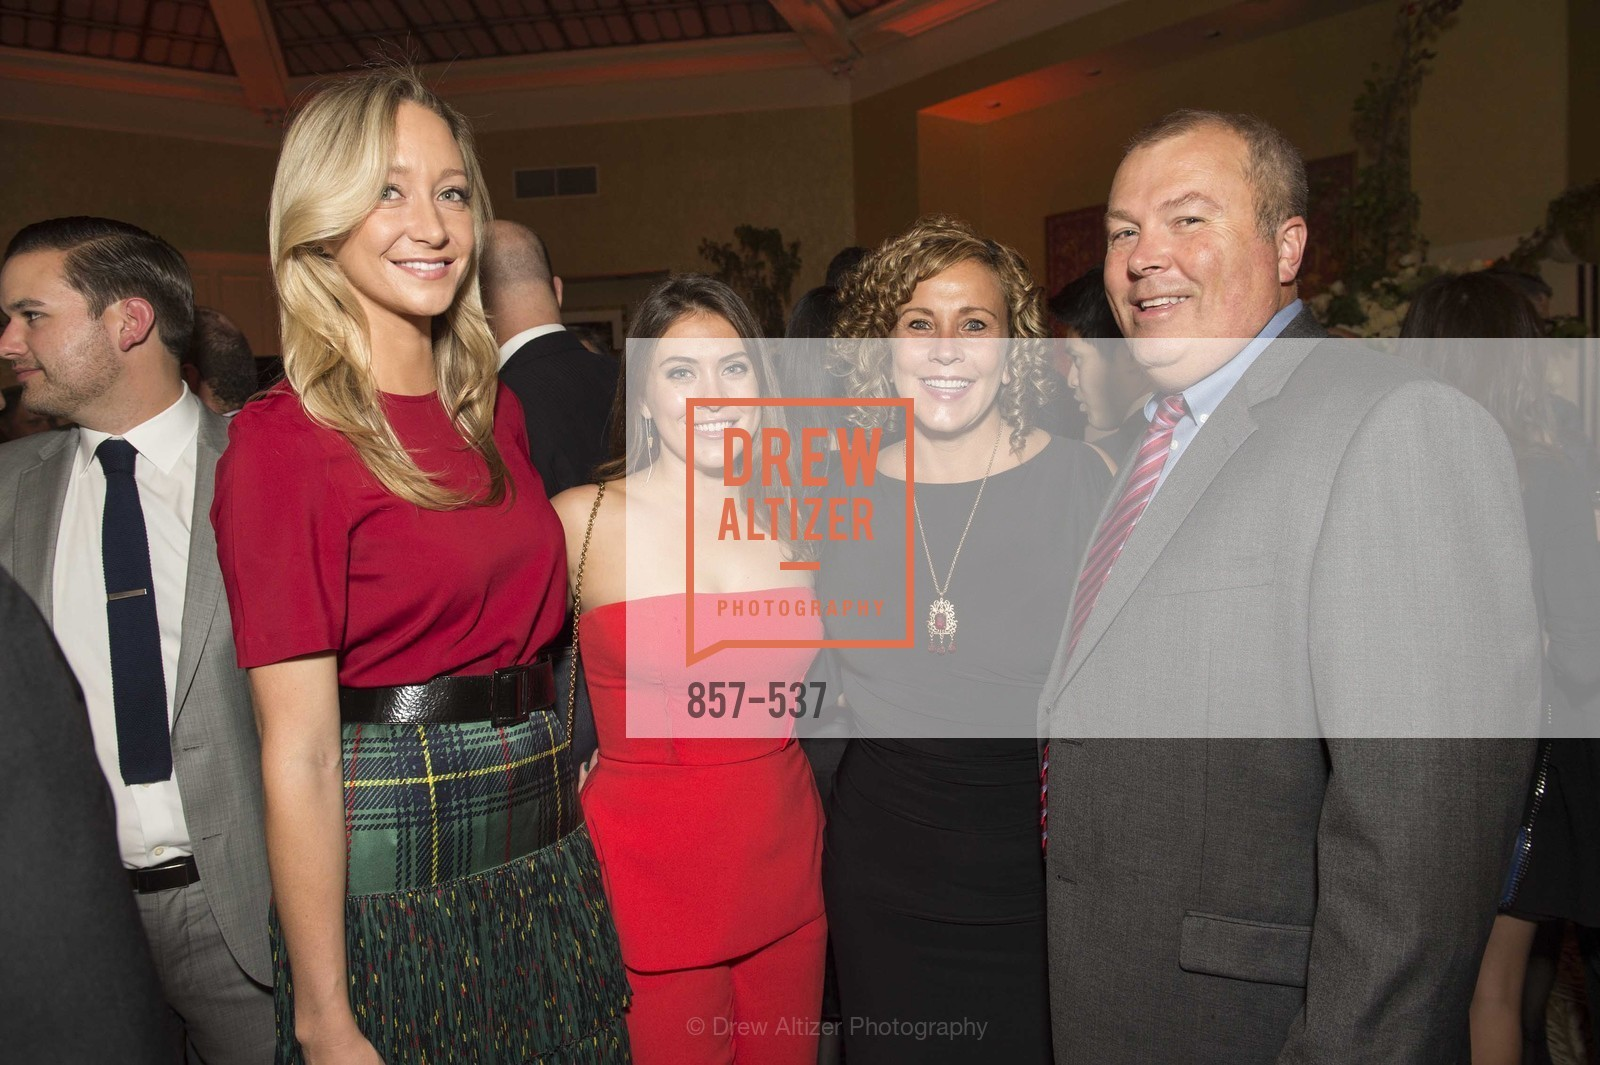 Makayla Smith, Madison Smith, Connie Smith, Derek Smith, TOP OF THE MARK'S 75TH Anniversary Party, US, November 6th, 2014,Drew Altizer, Drew Altizer Photography, full-service agency, private events, San Francisco photographer, photographer california